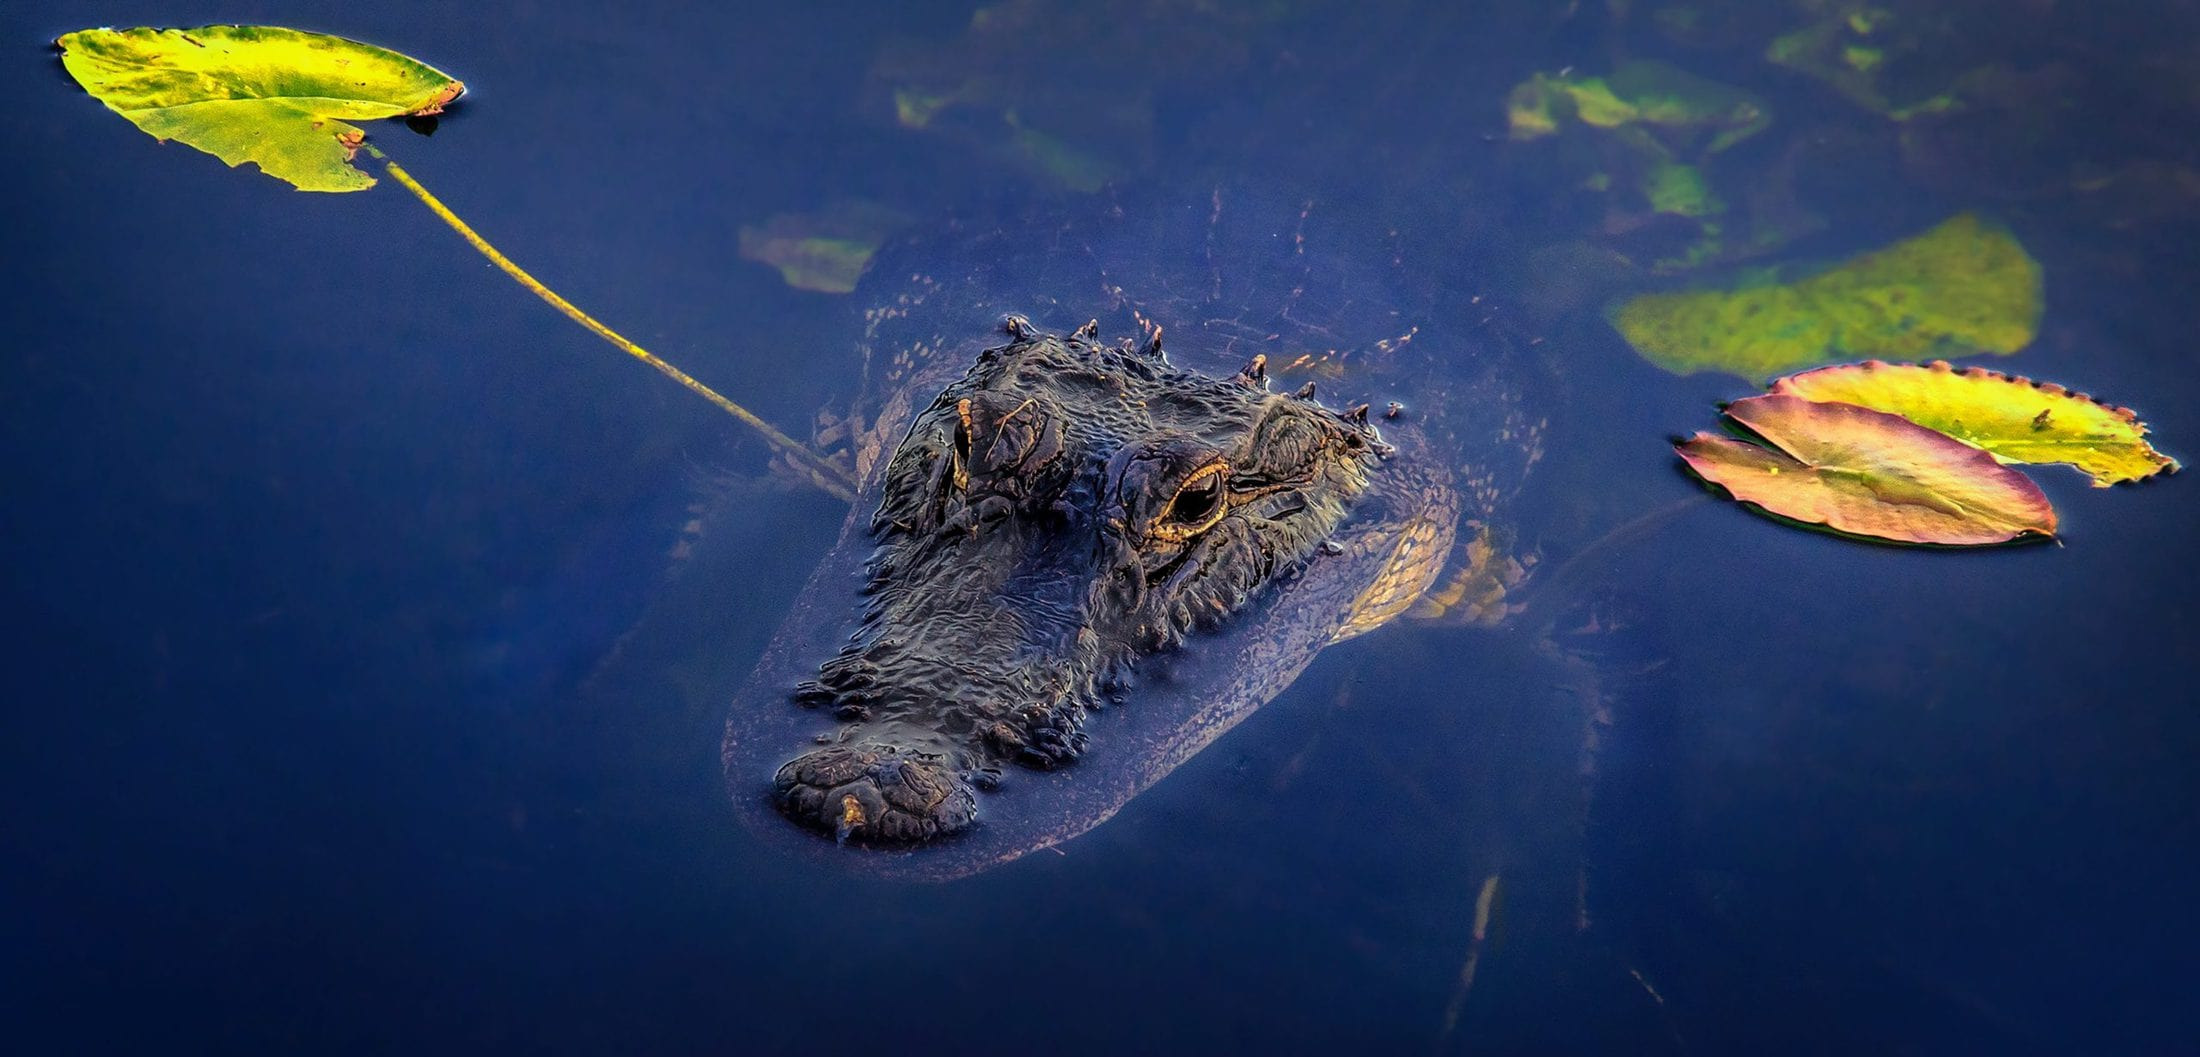 black crocodile on water during daytime